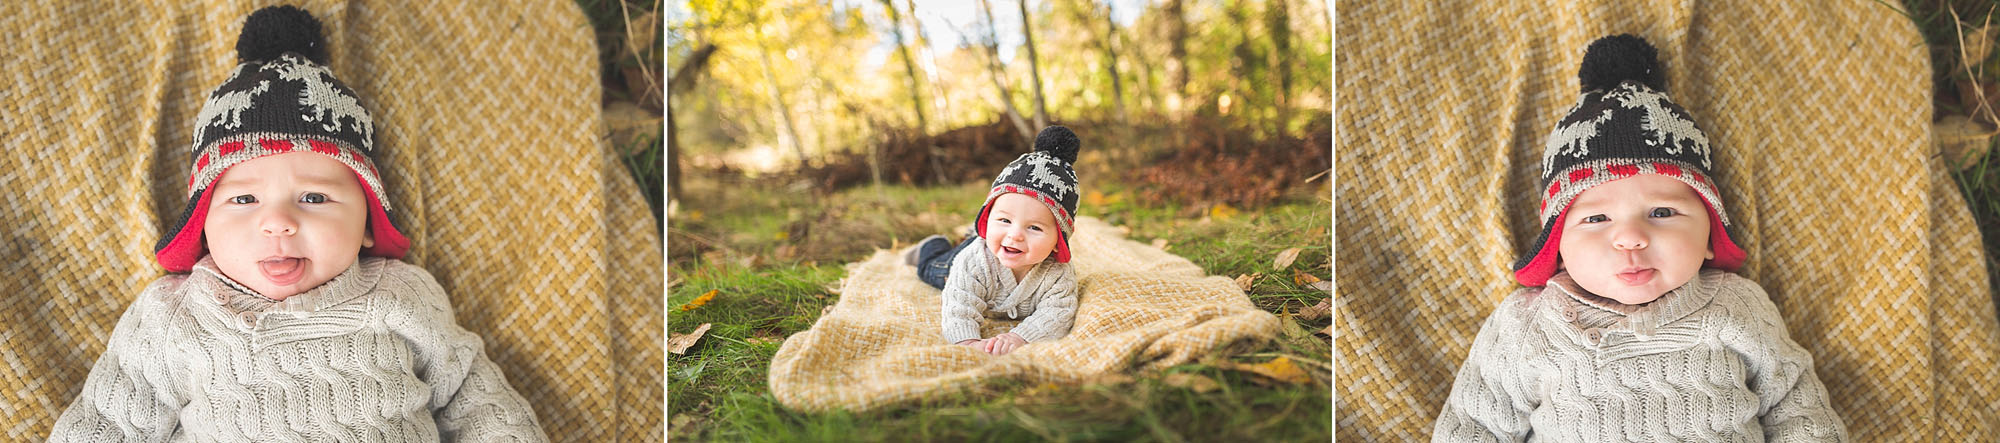 ashley vos photography seattle area lifestyle family and birth photography_0102.jpg